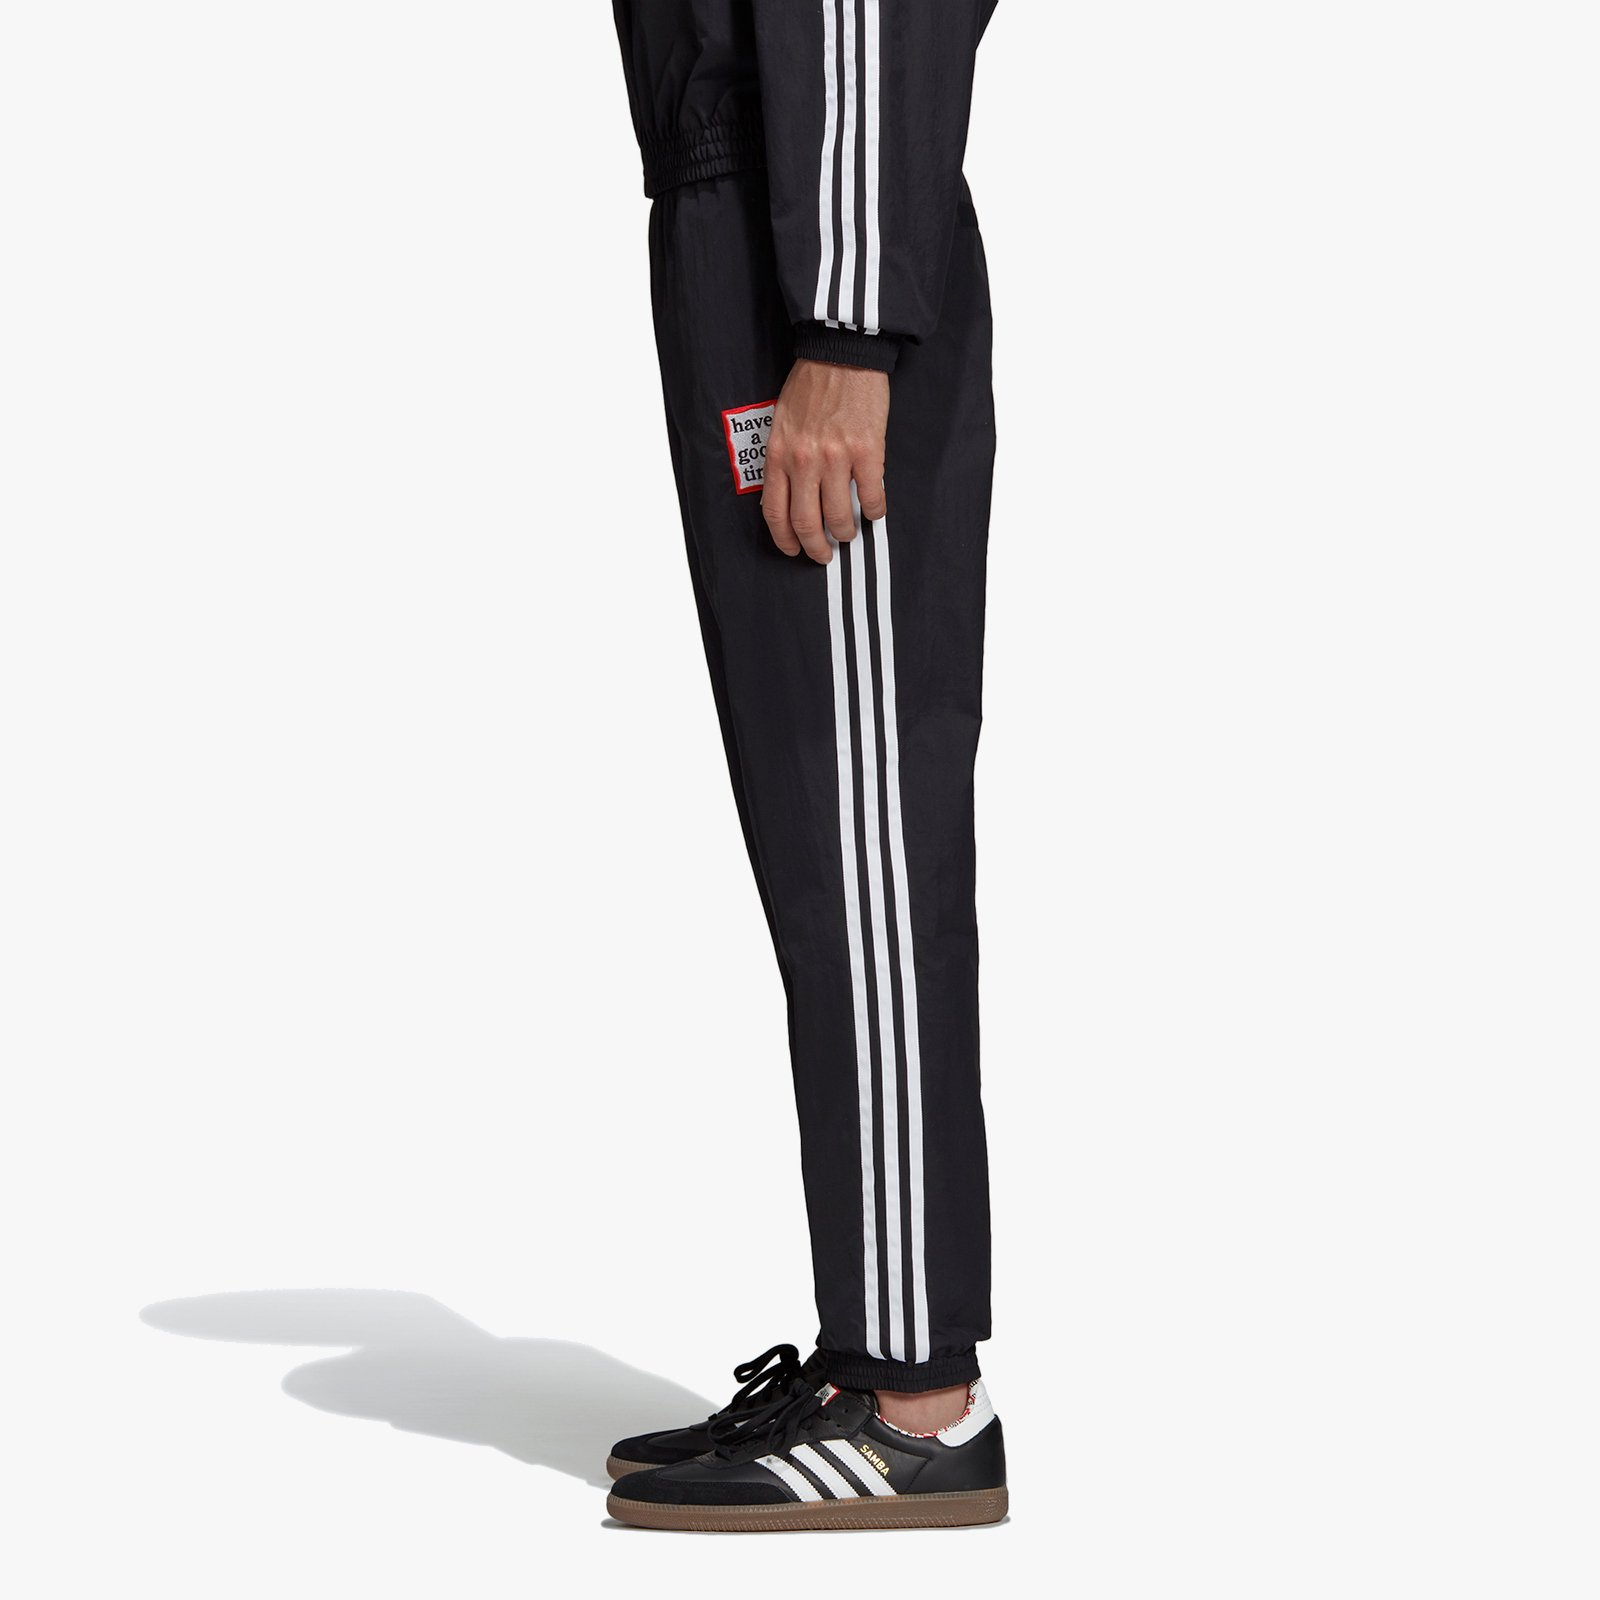 separation shoes 4b7d4 6743f ... adidas Consortium Reversible Track Pants x Have A Good Time ...